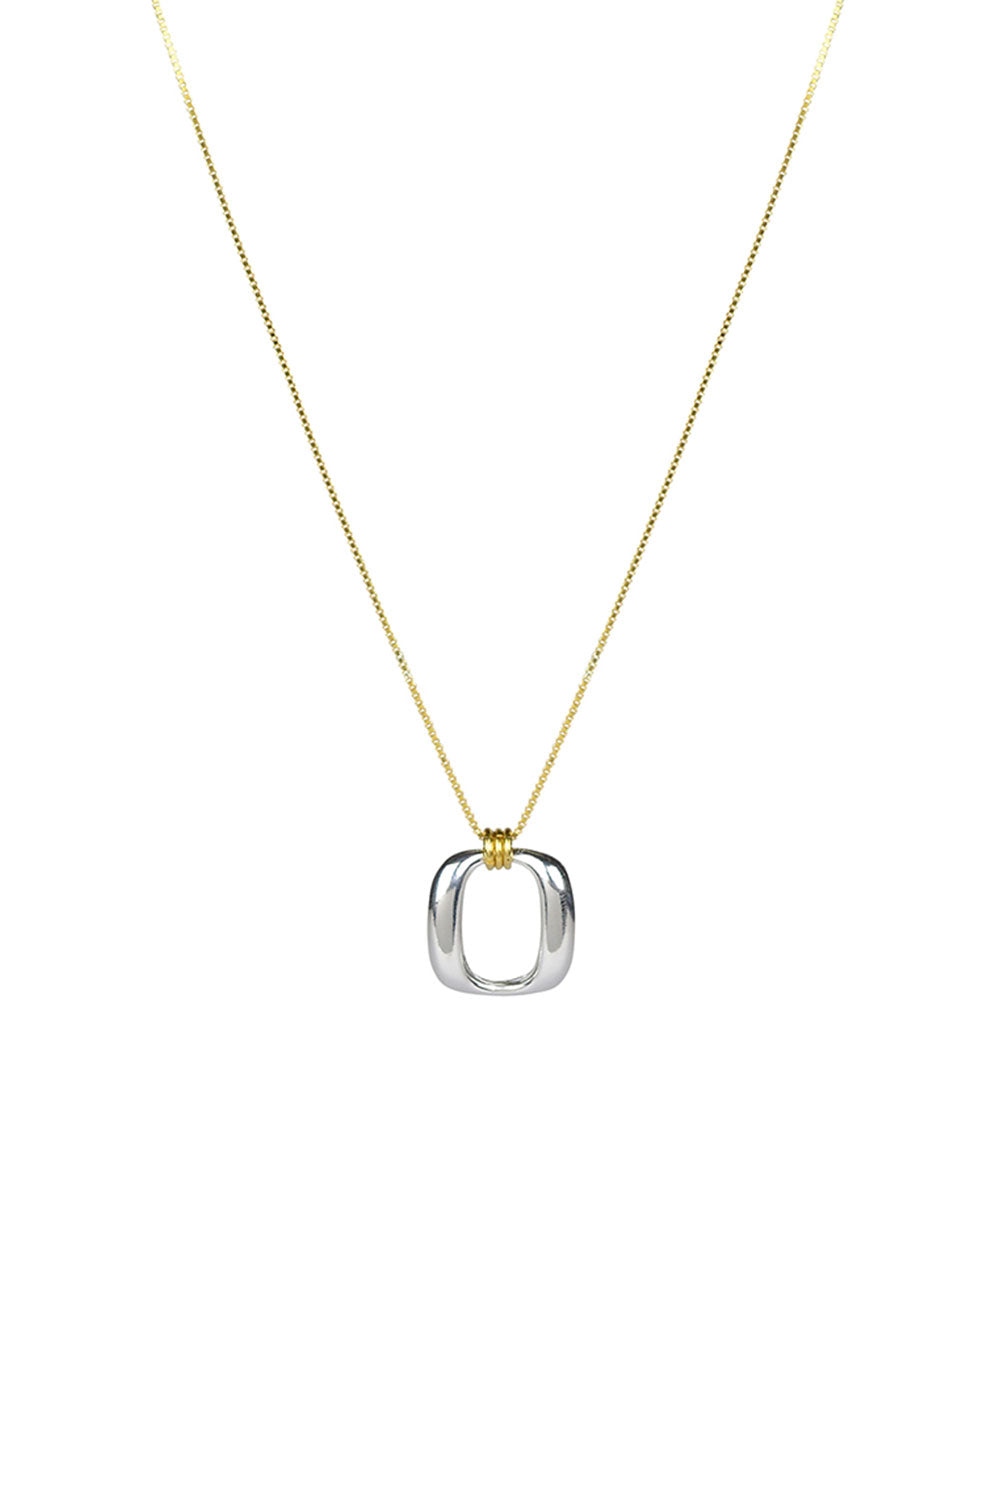 ENLAZAR PENDANT | SILVER AND GOLD | BRIE LEON NZ | Jewellery NZ | Black Box Boutique Auckland | Womens Fashion NZ